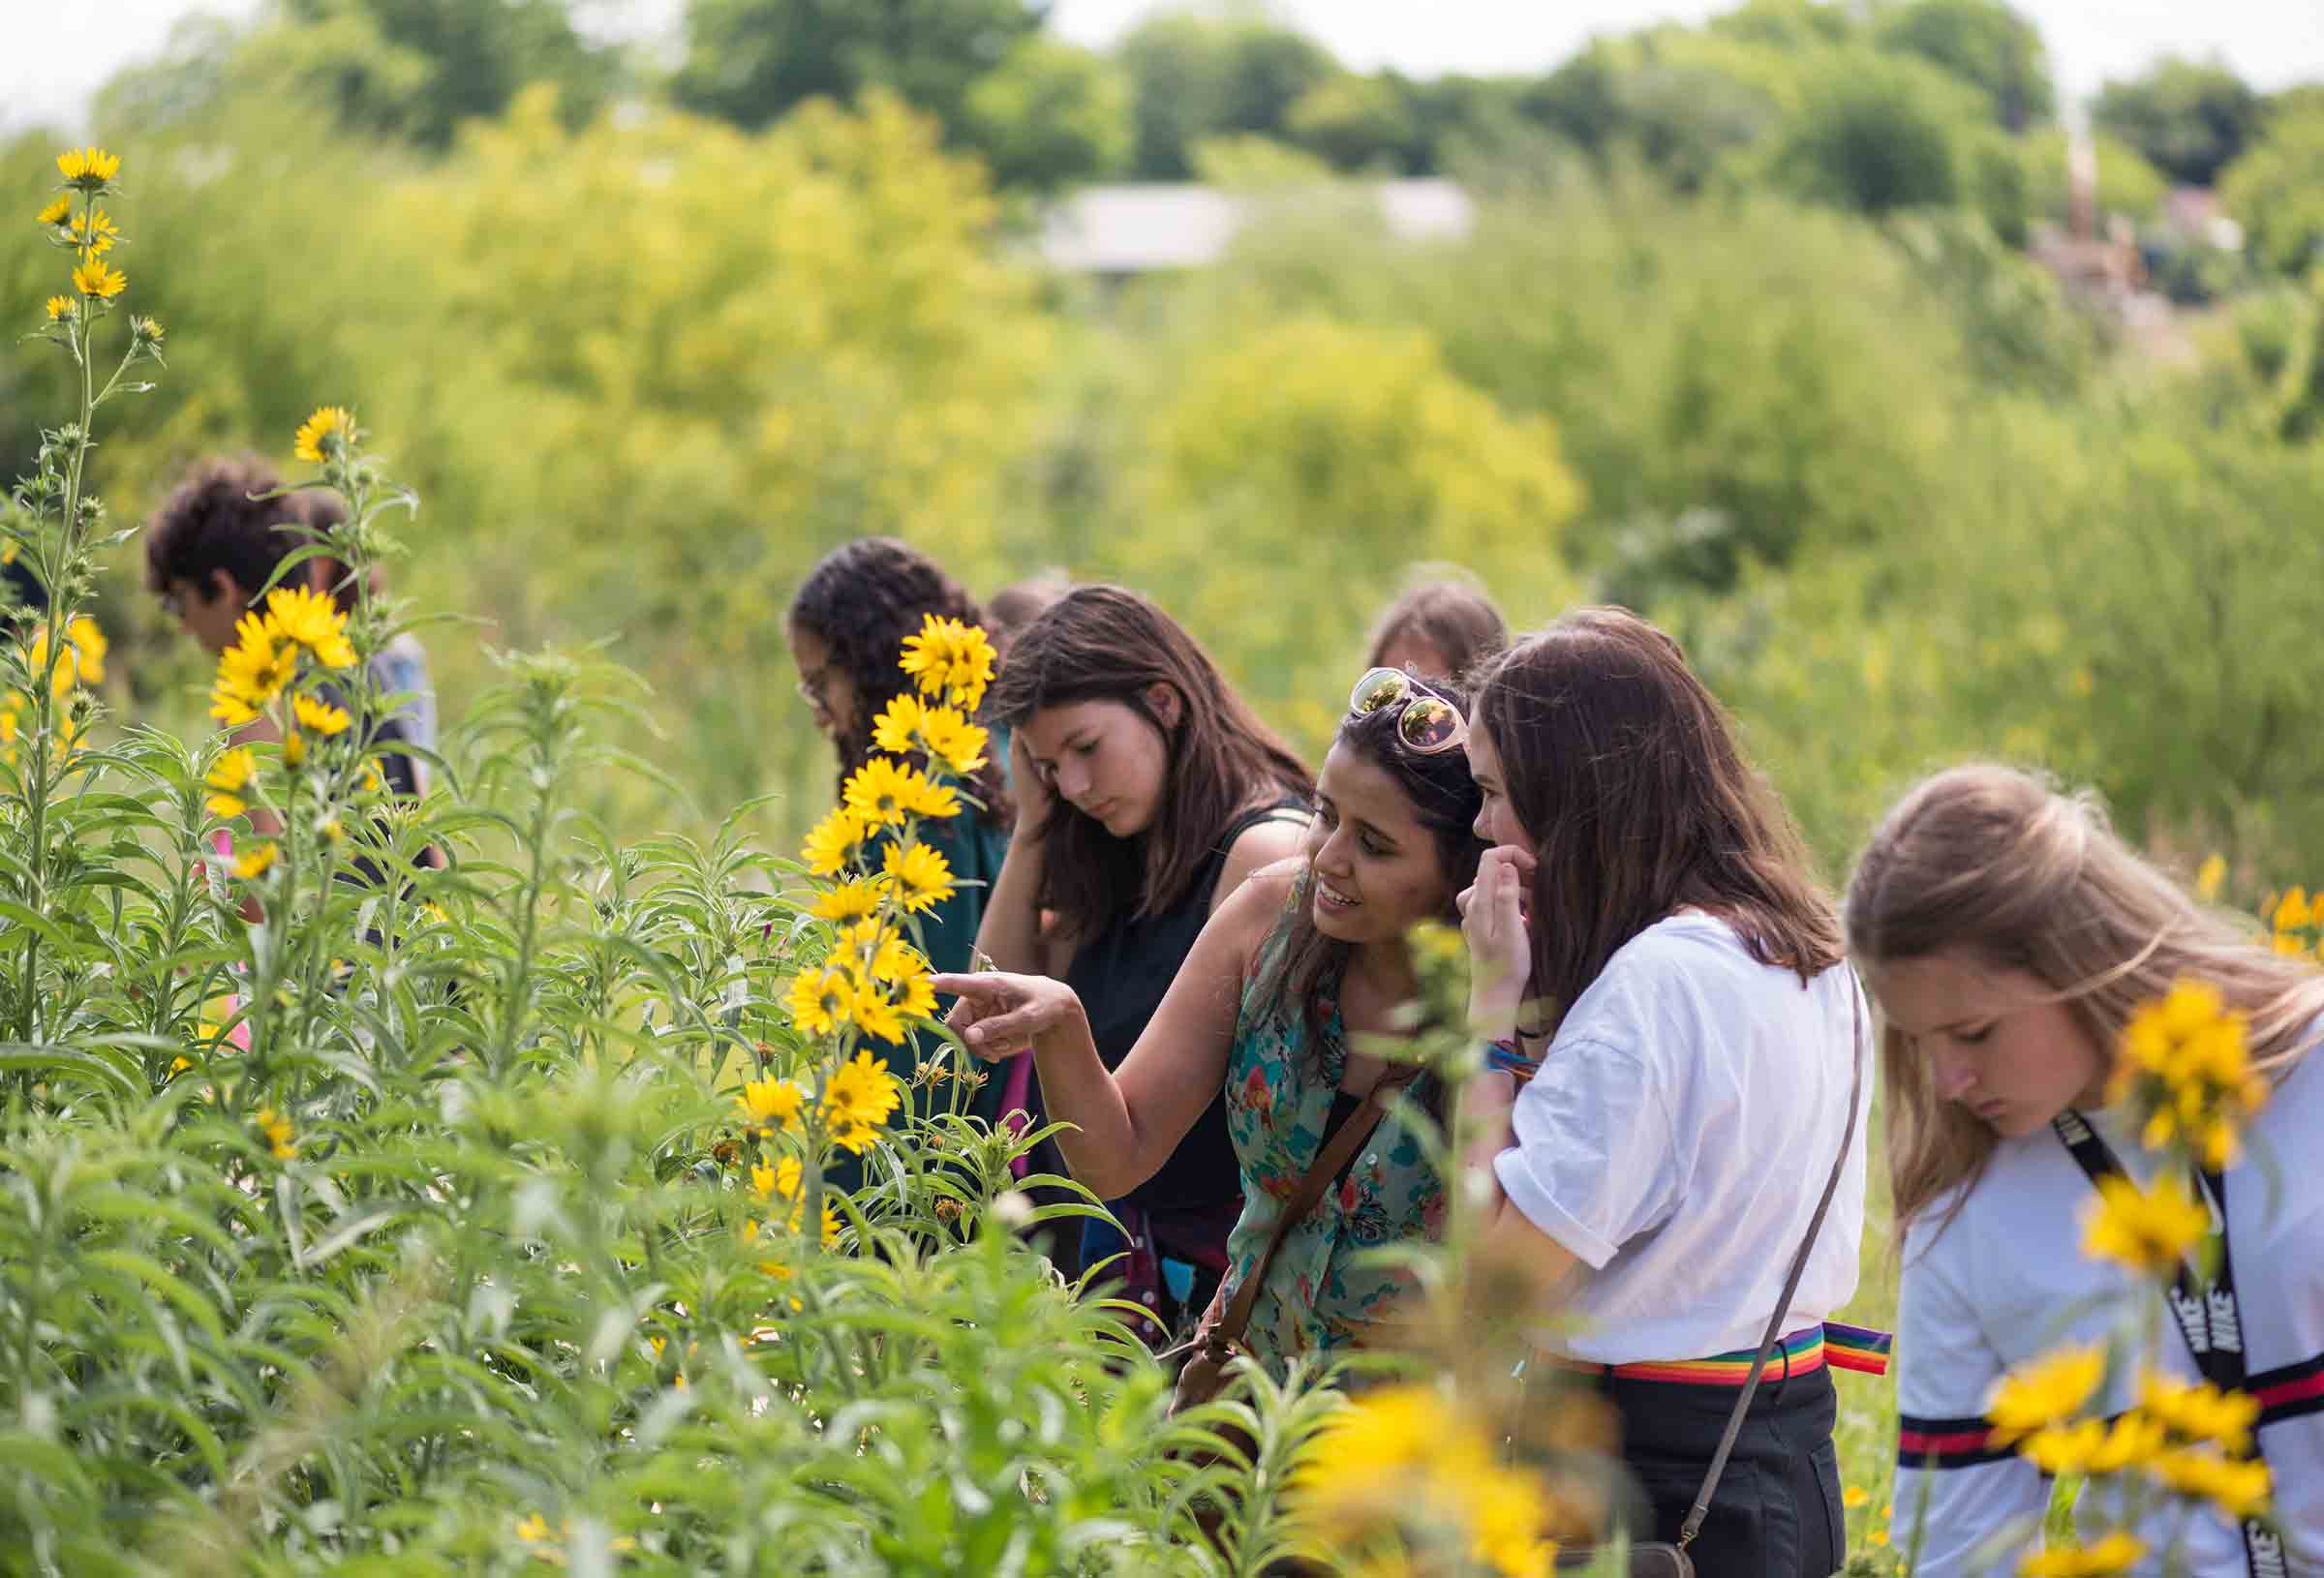 Event Image - Confluence Park Sunflowers